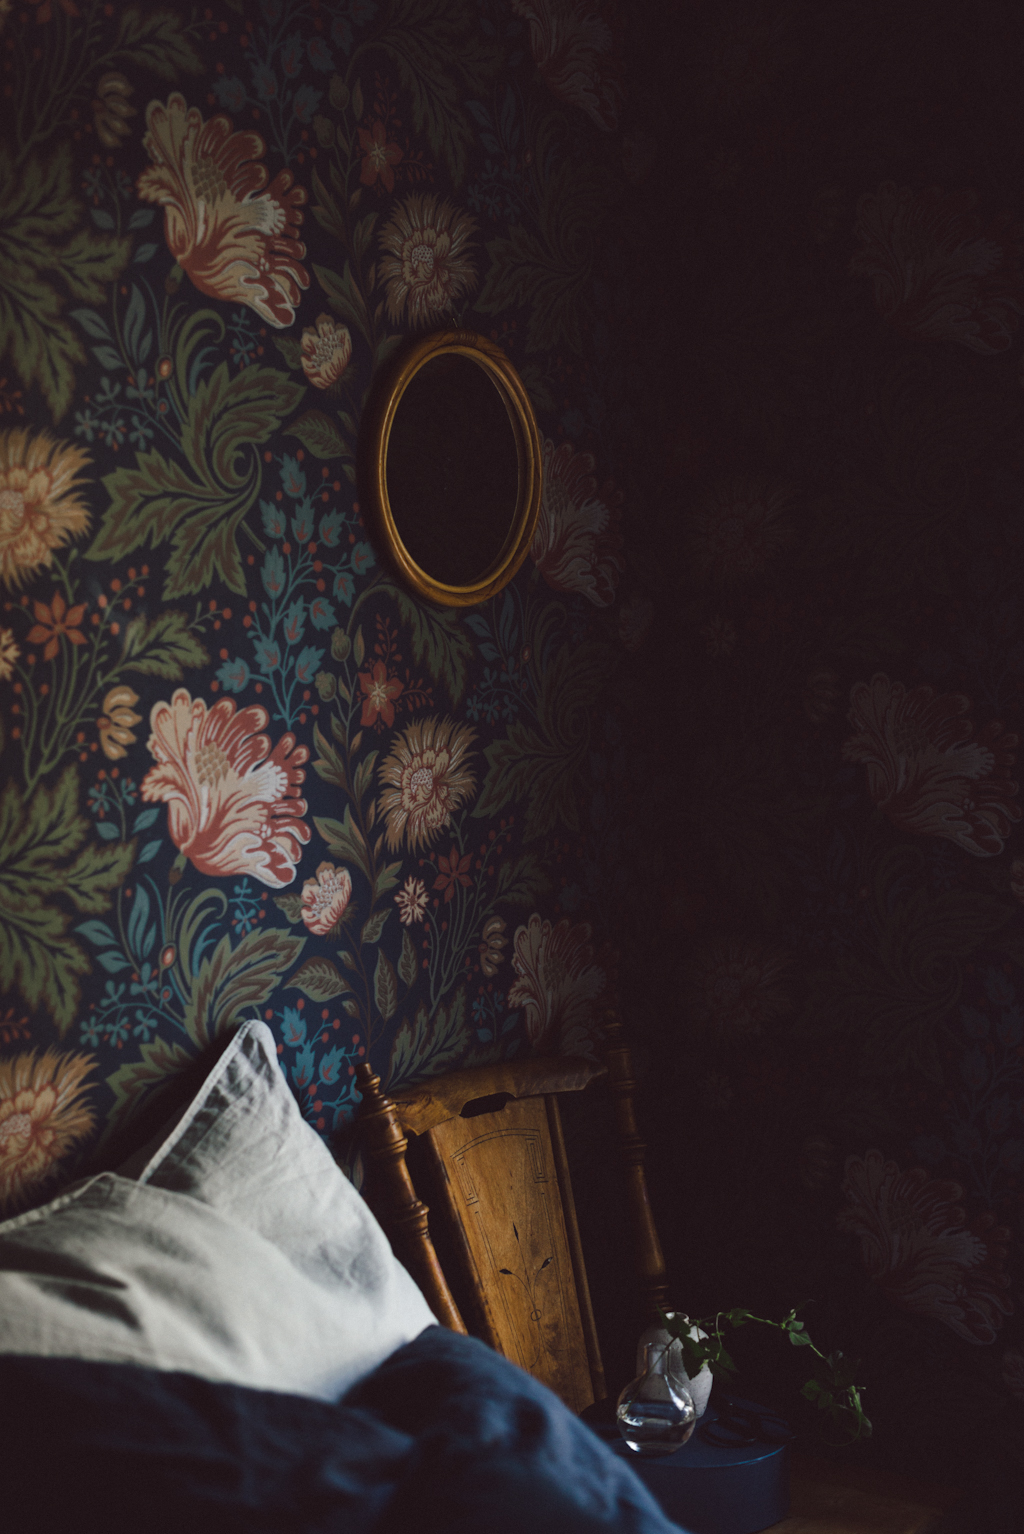 Ava wallpaper by Babes in Boyland